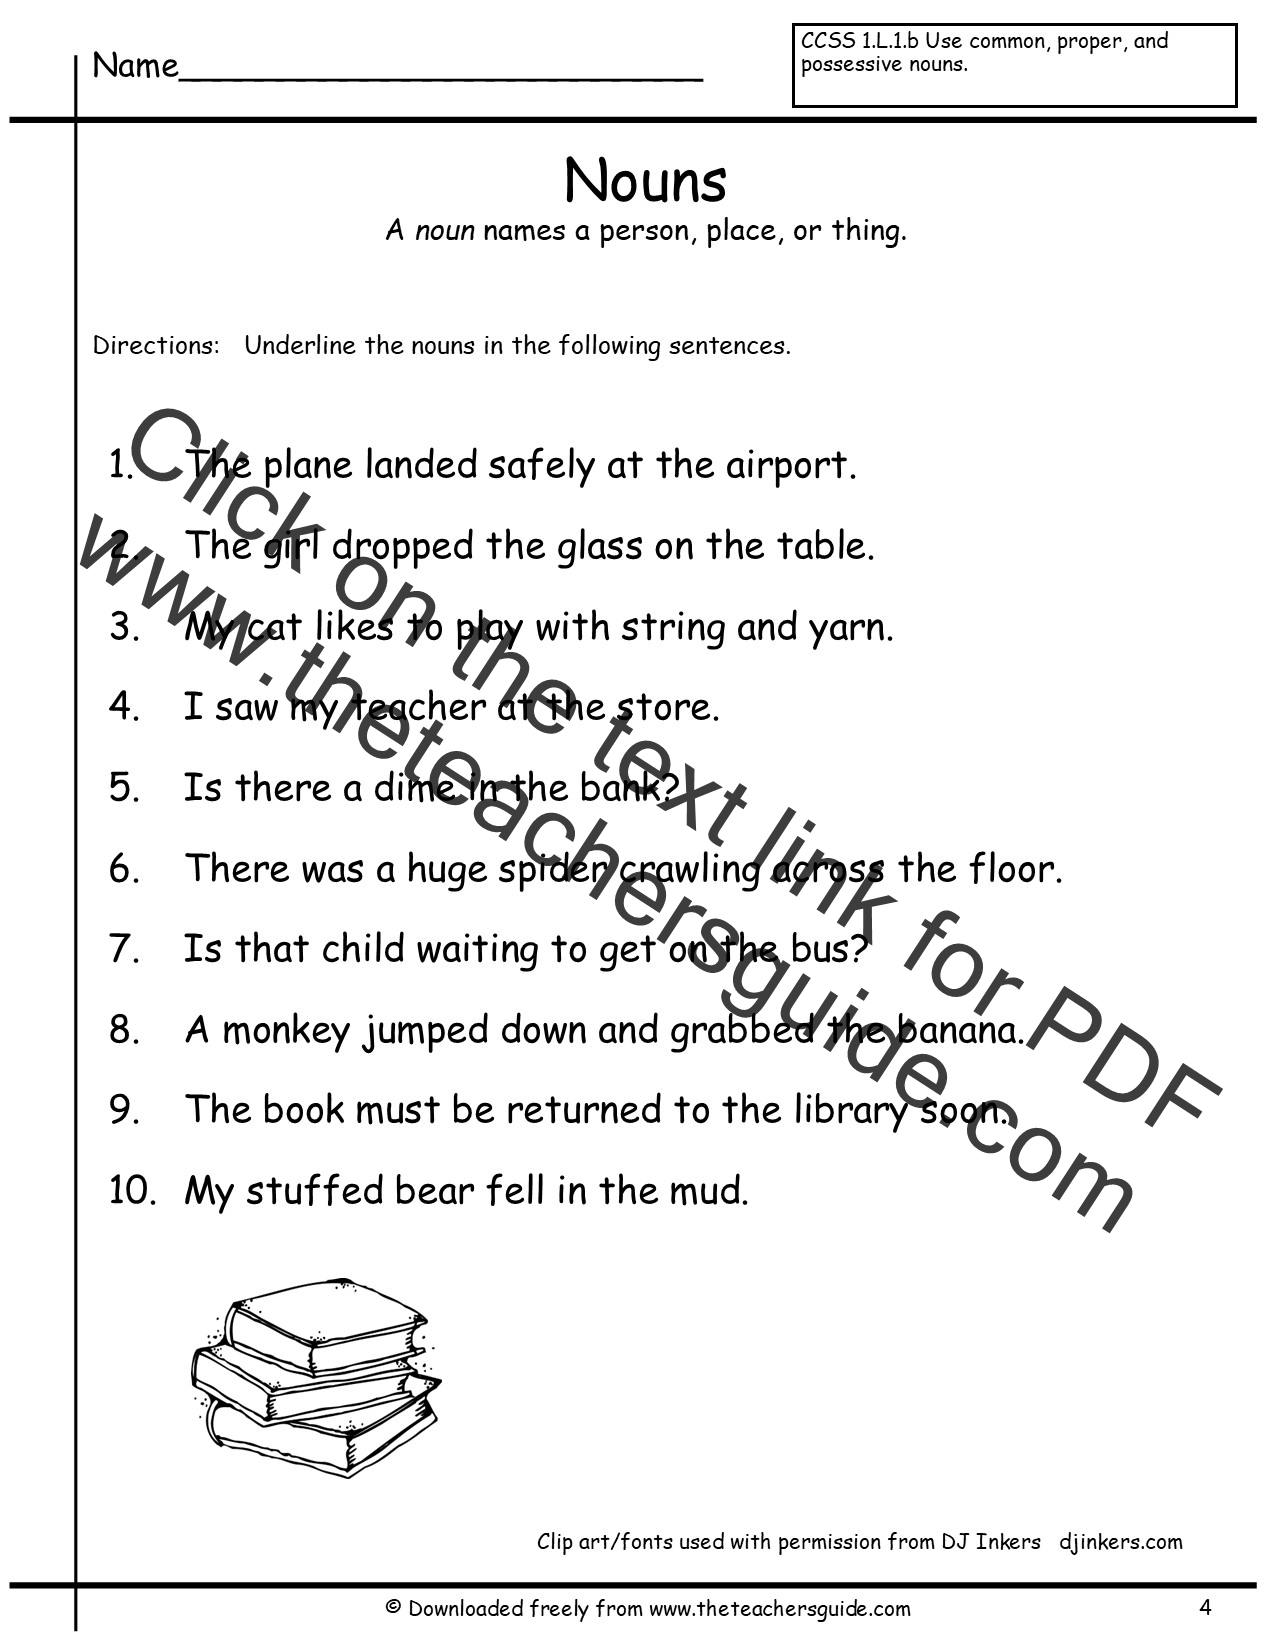 Nouns Worksheets from The Teachers Guide – Nouns Worksheets